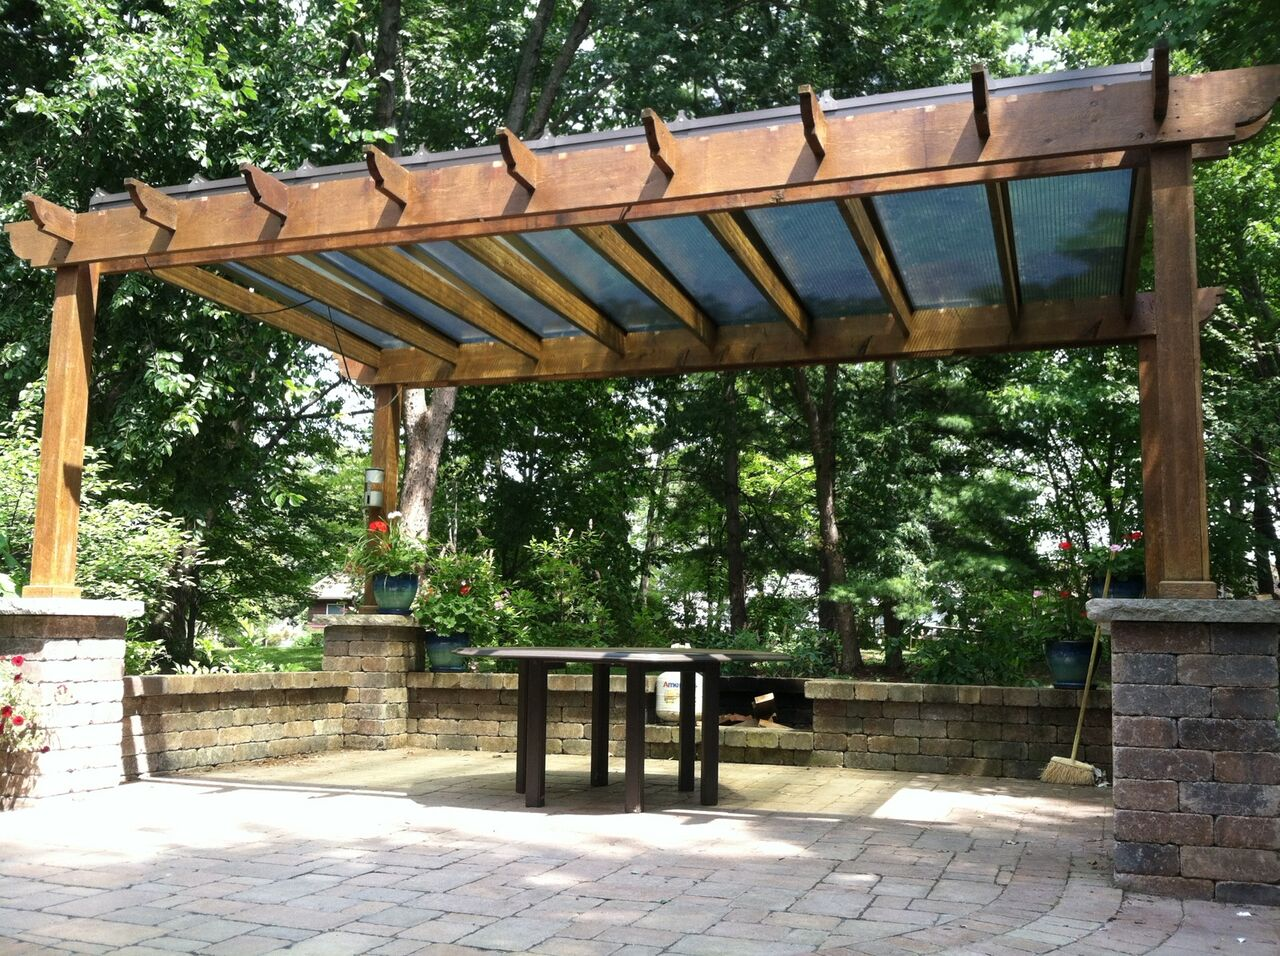 Good With BrightCovers Pergola Covers You Get To Enjoy The Beautiful Design Of A  Classic Pergola, But With The Rain, Snow, And UV Protection Of A Patio Roof.